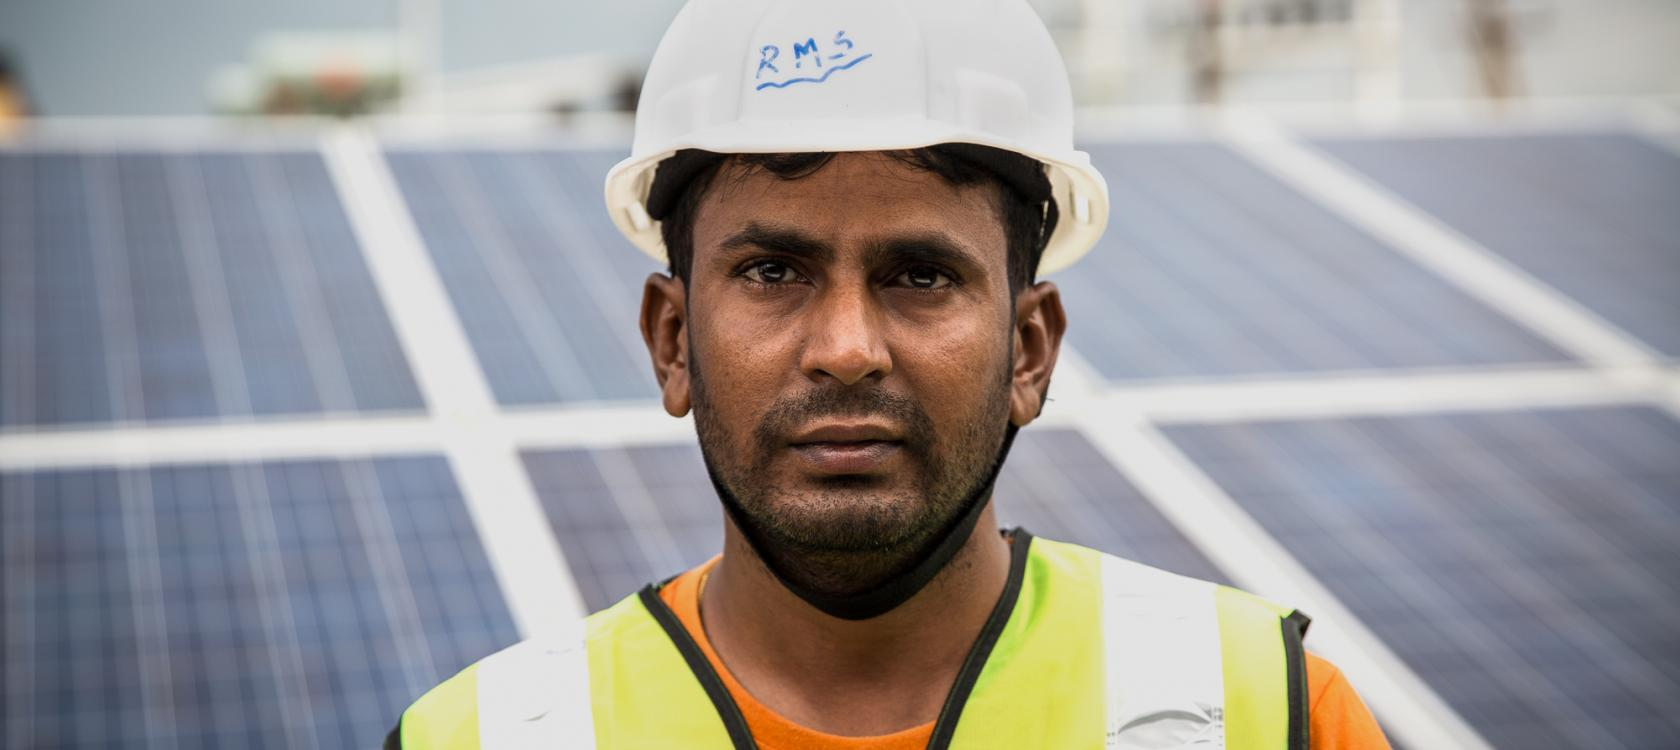 worker, man, renewable energy, solar panels, India